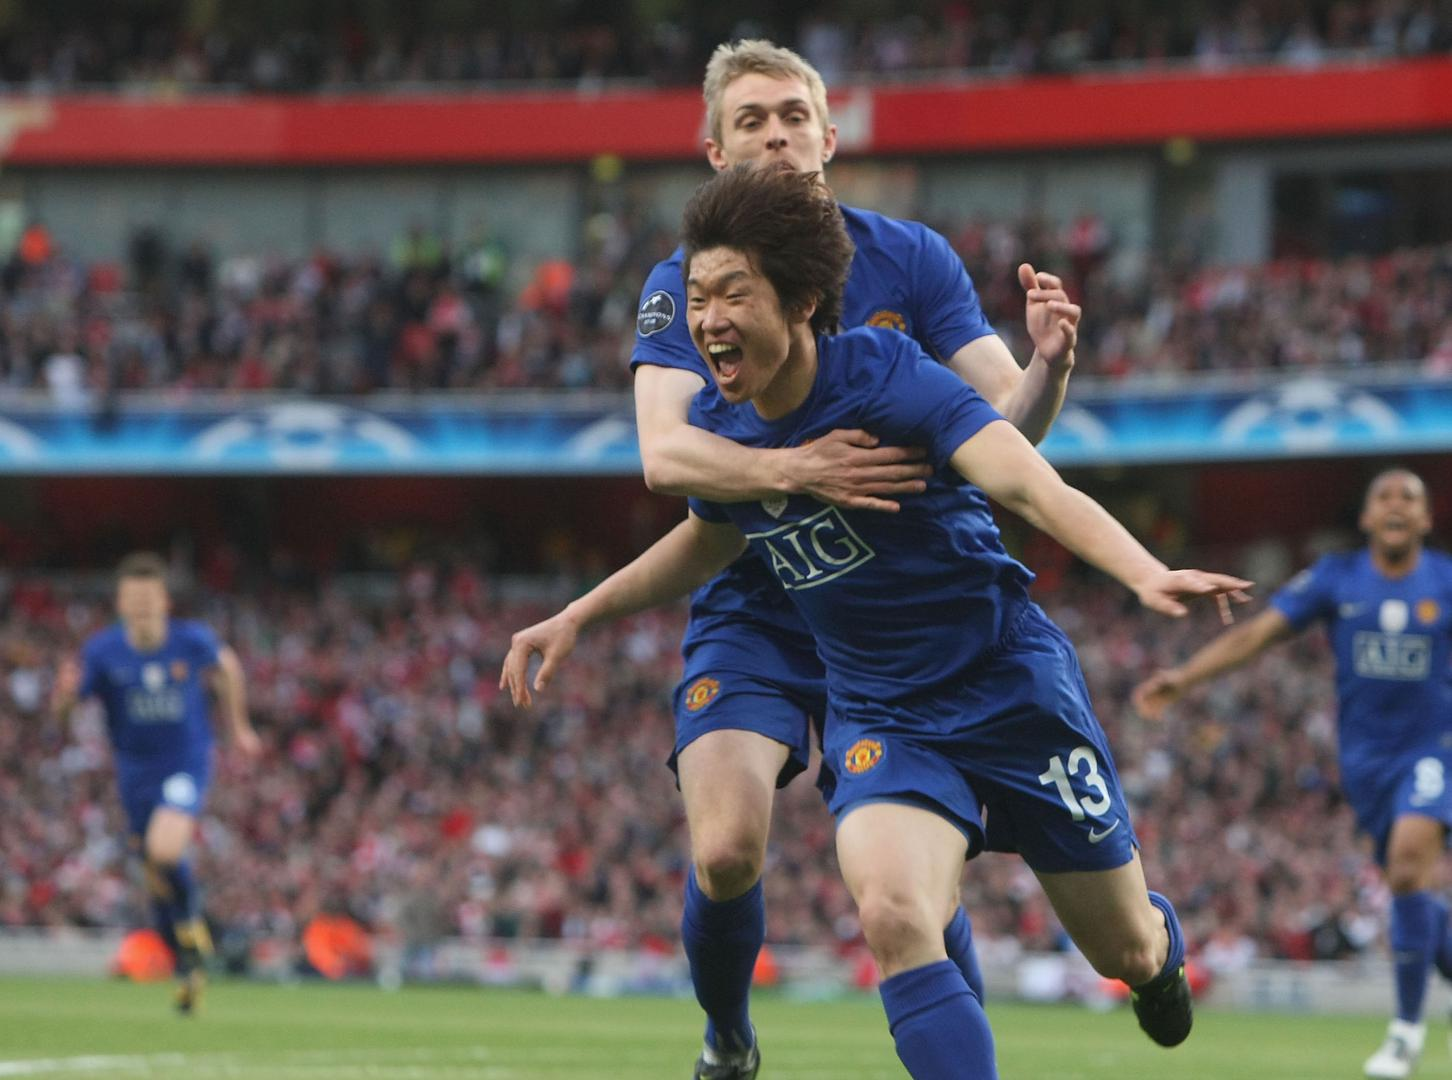 Ji-sung Park celebrates his goal against Arsenal in the 2009 Champions League semi-final with Darren Fletcher